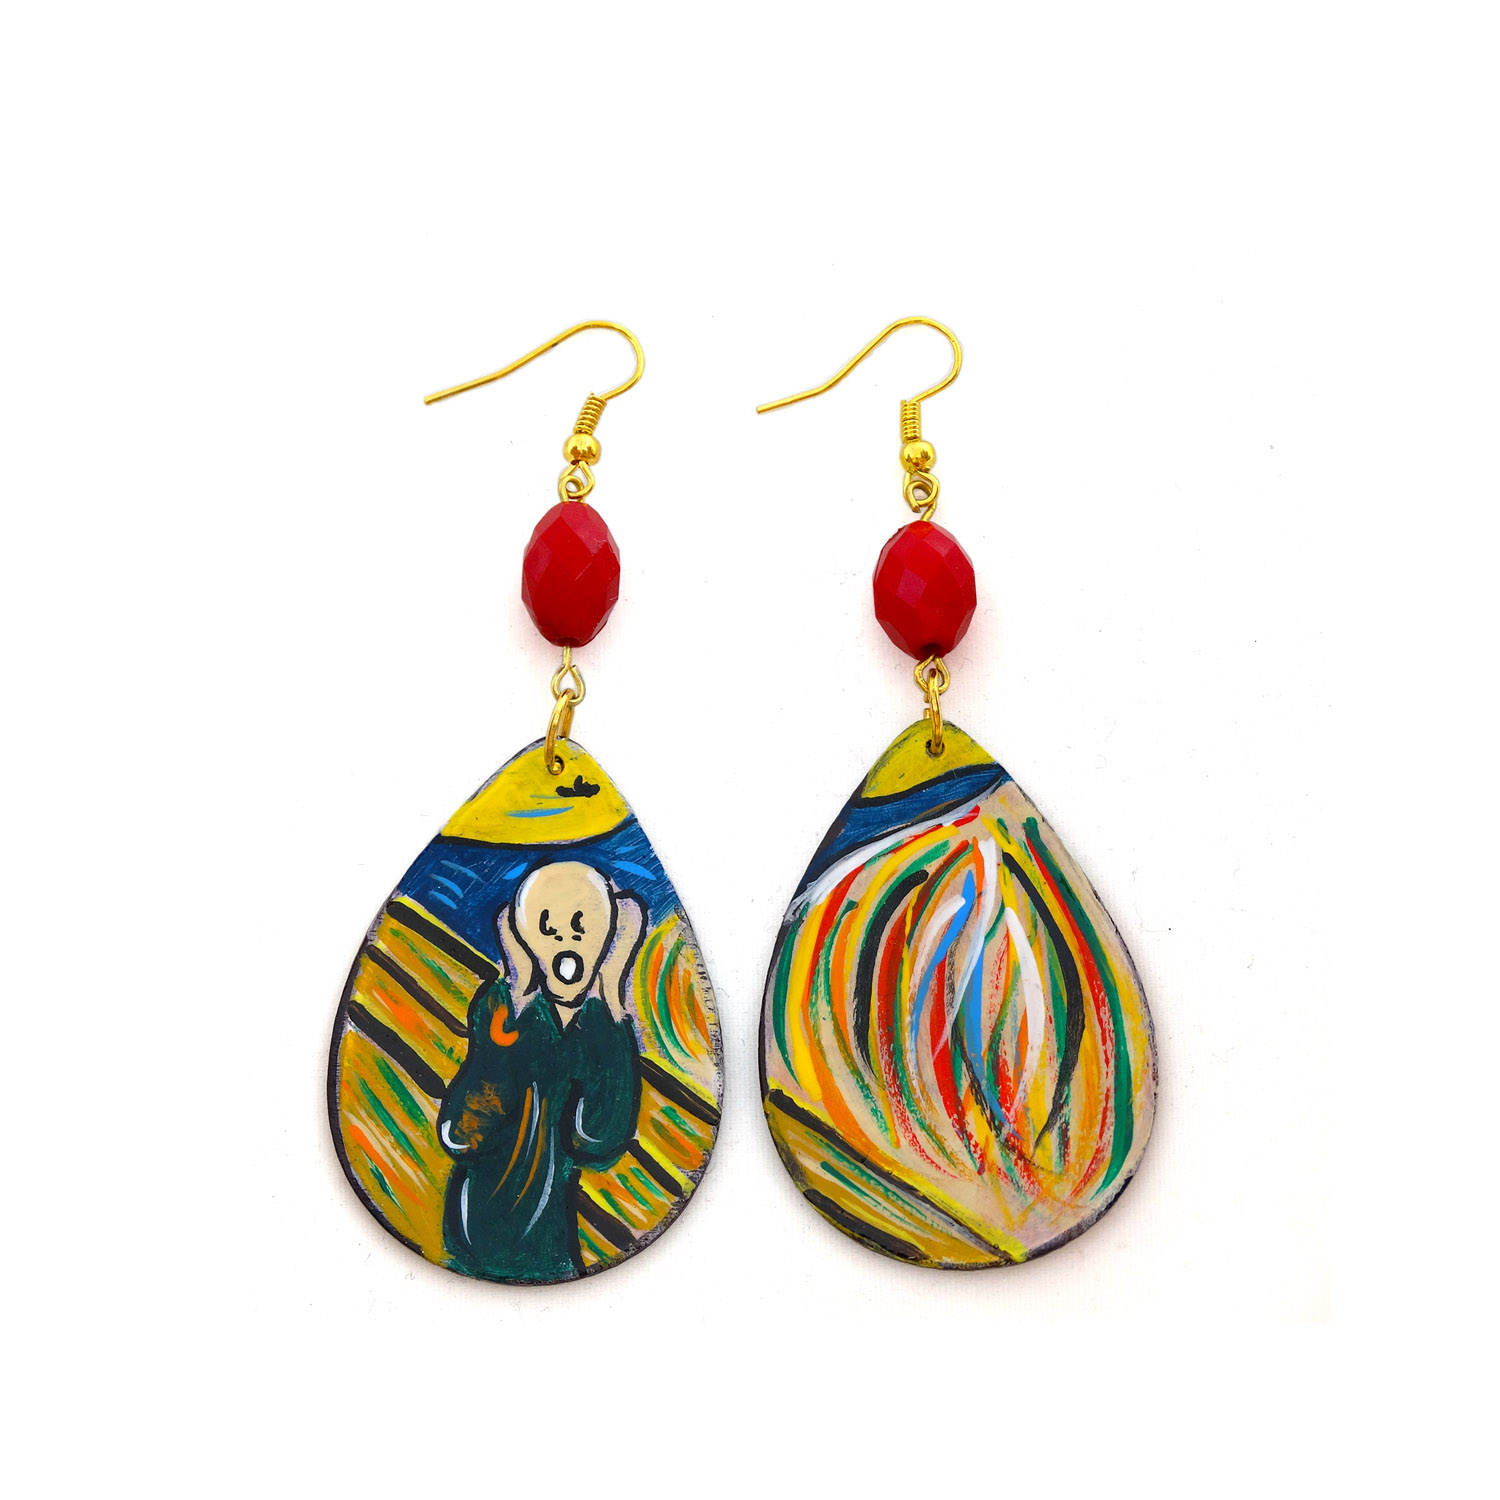 Hand painted earrings - The Scream by Munch